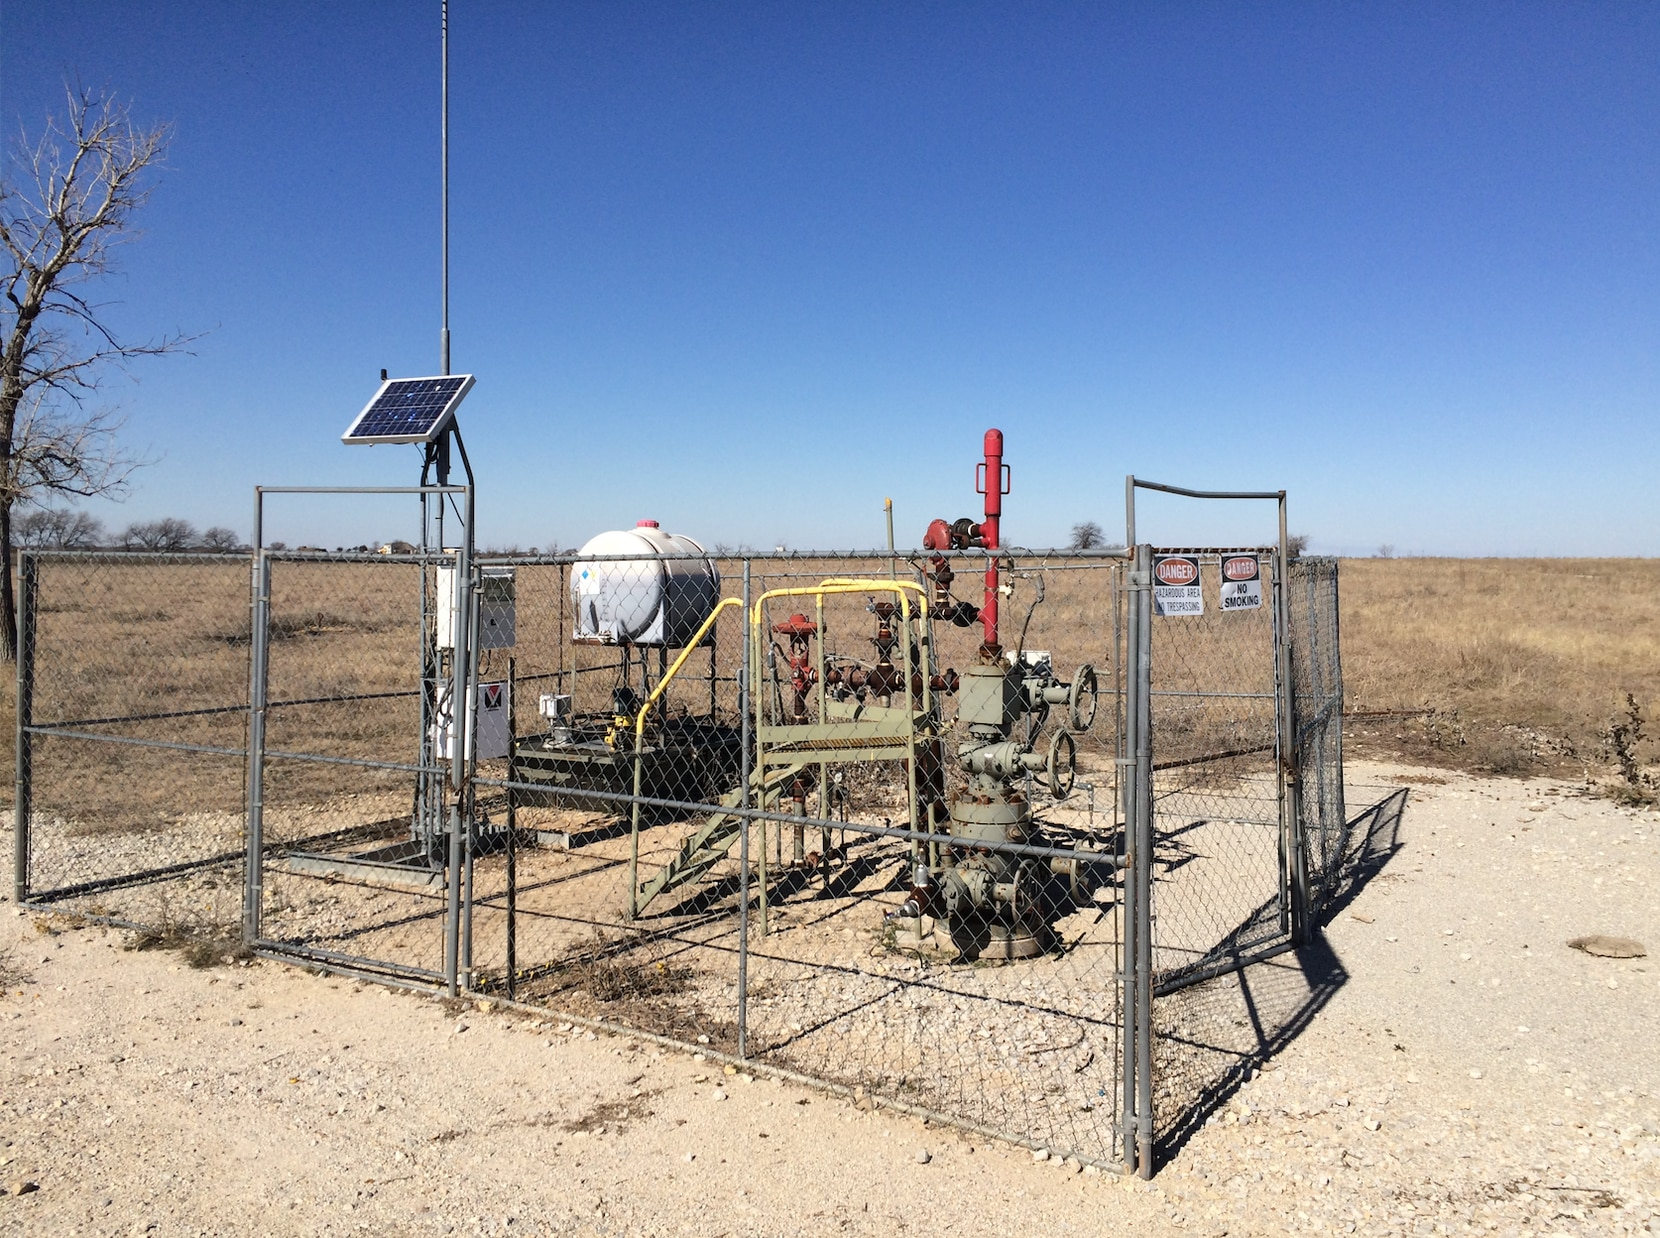 The C. W. Slay #1 was the first successfull natural gas well drilled in the Barnett Shale.